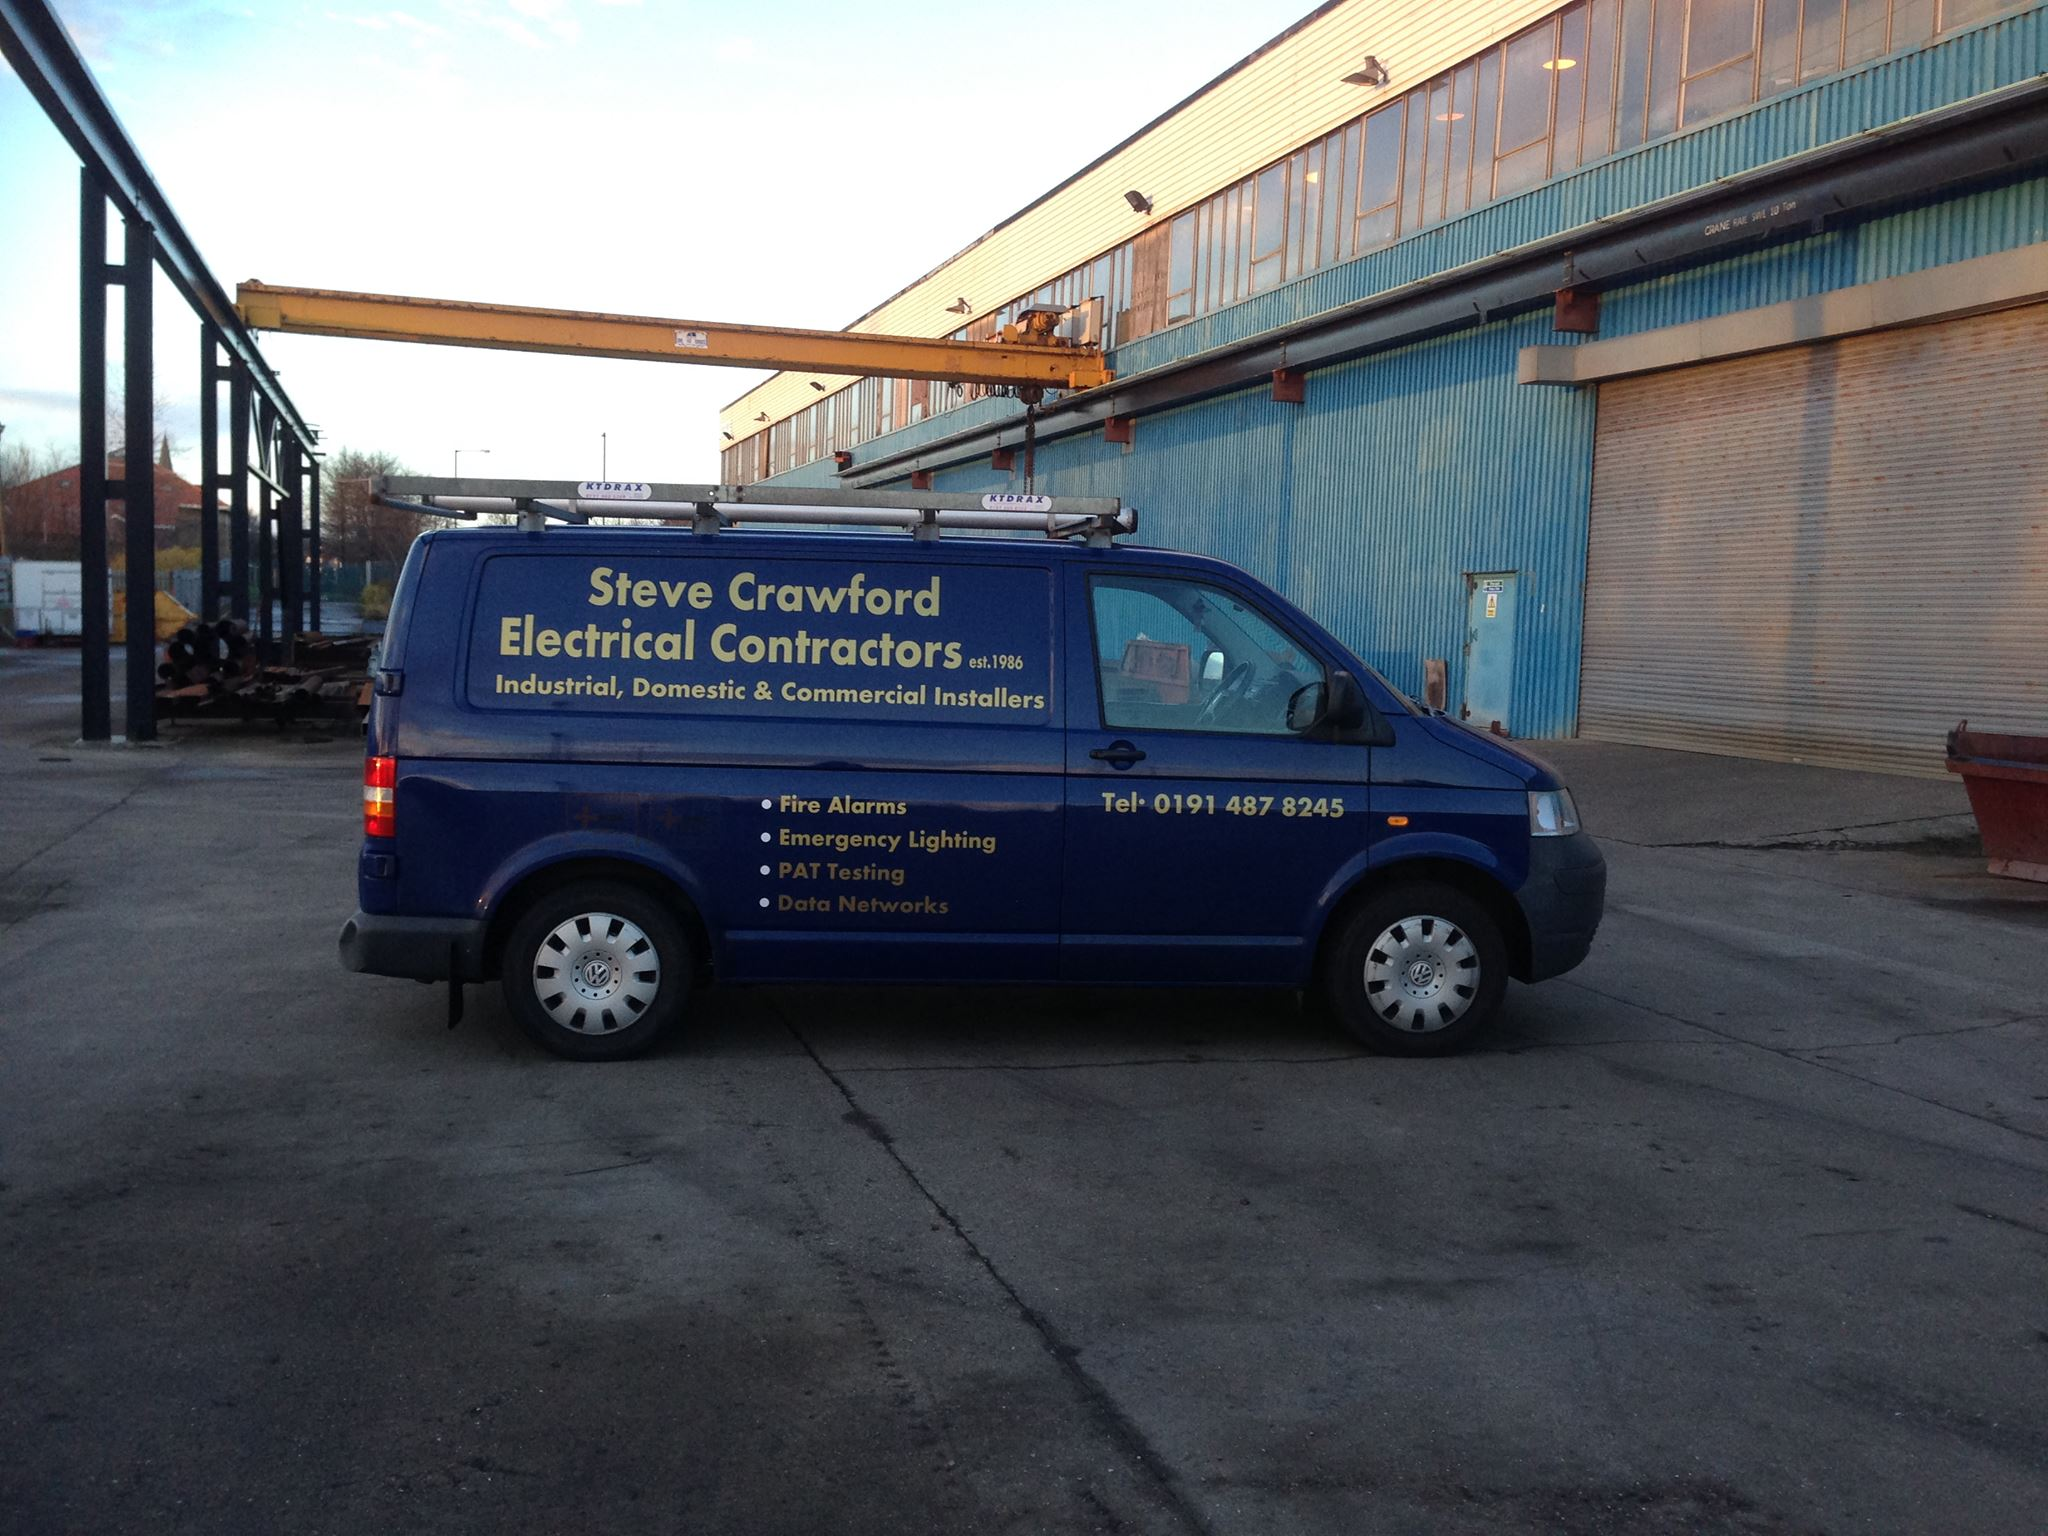 Steve Crawford Electrical Contractors Ltd Photo